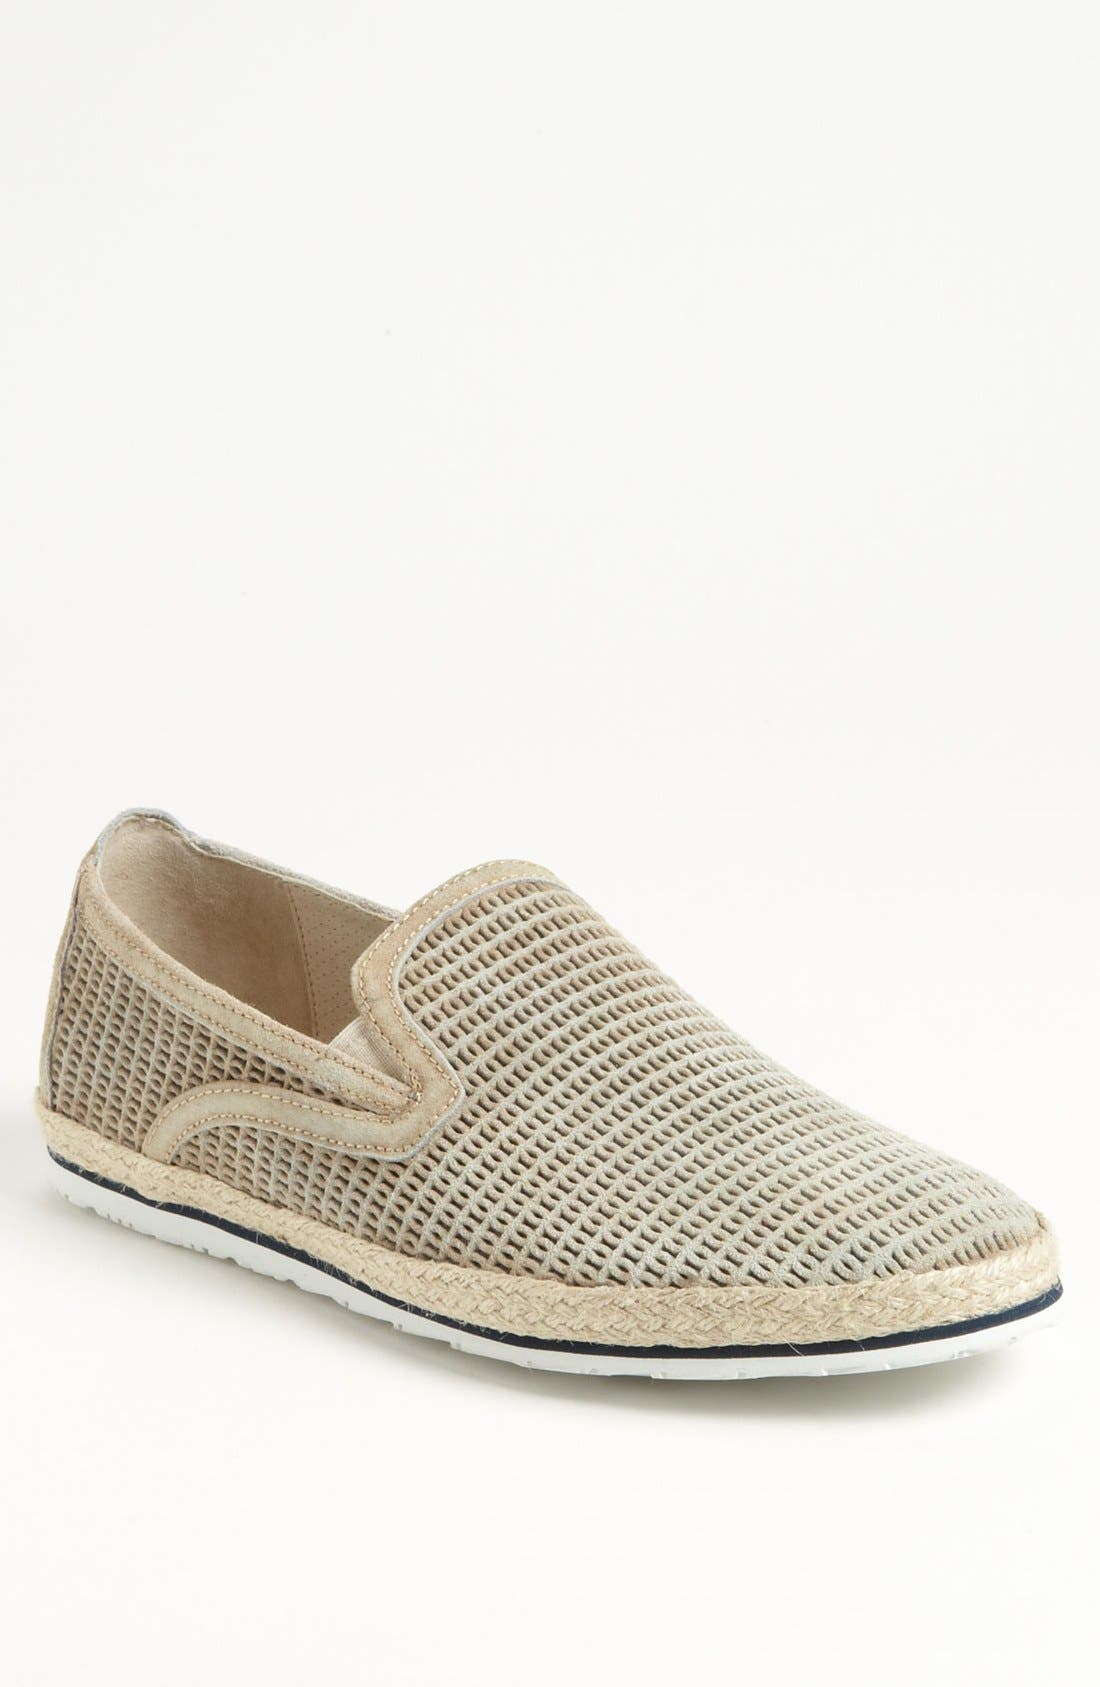 Alternate Image 1 Selected - Vince Camuto 'Sellero' Slip-On